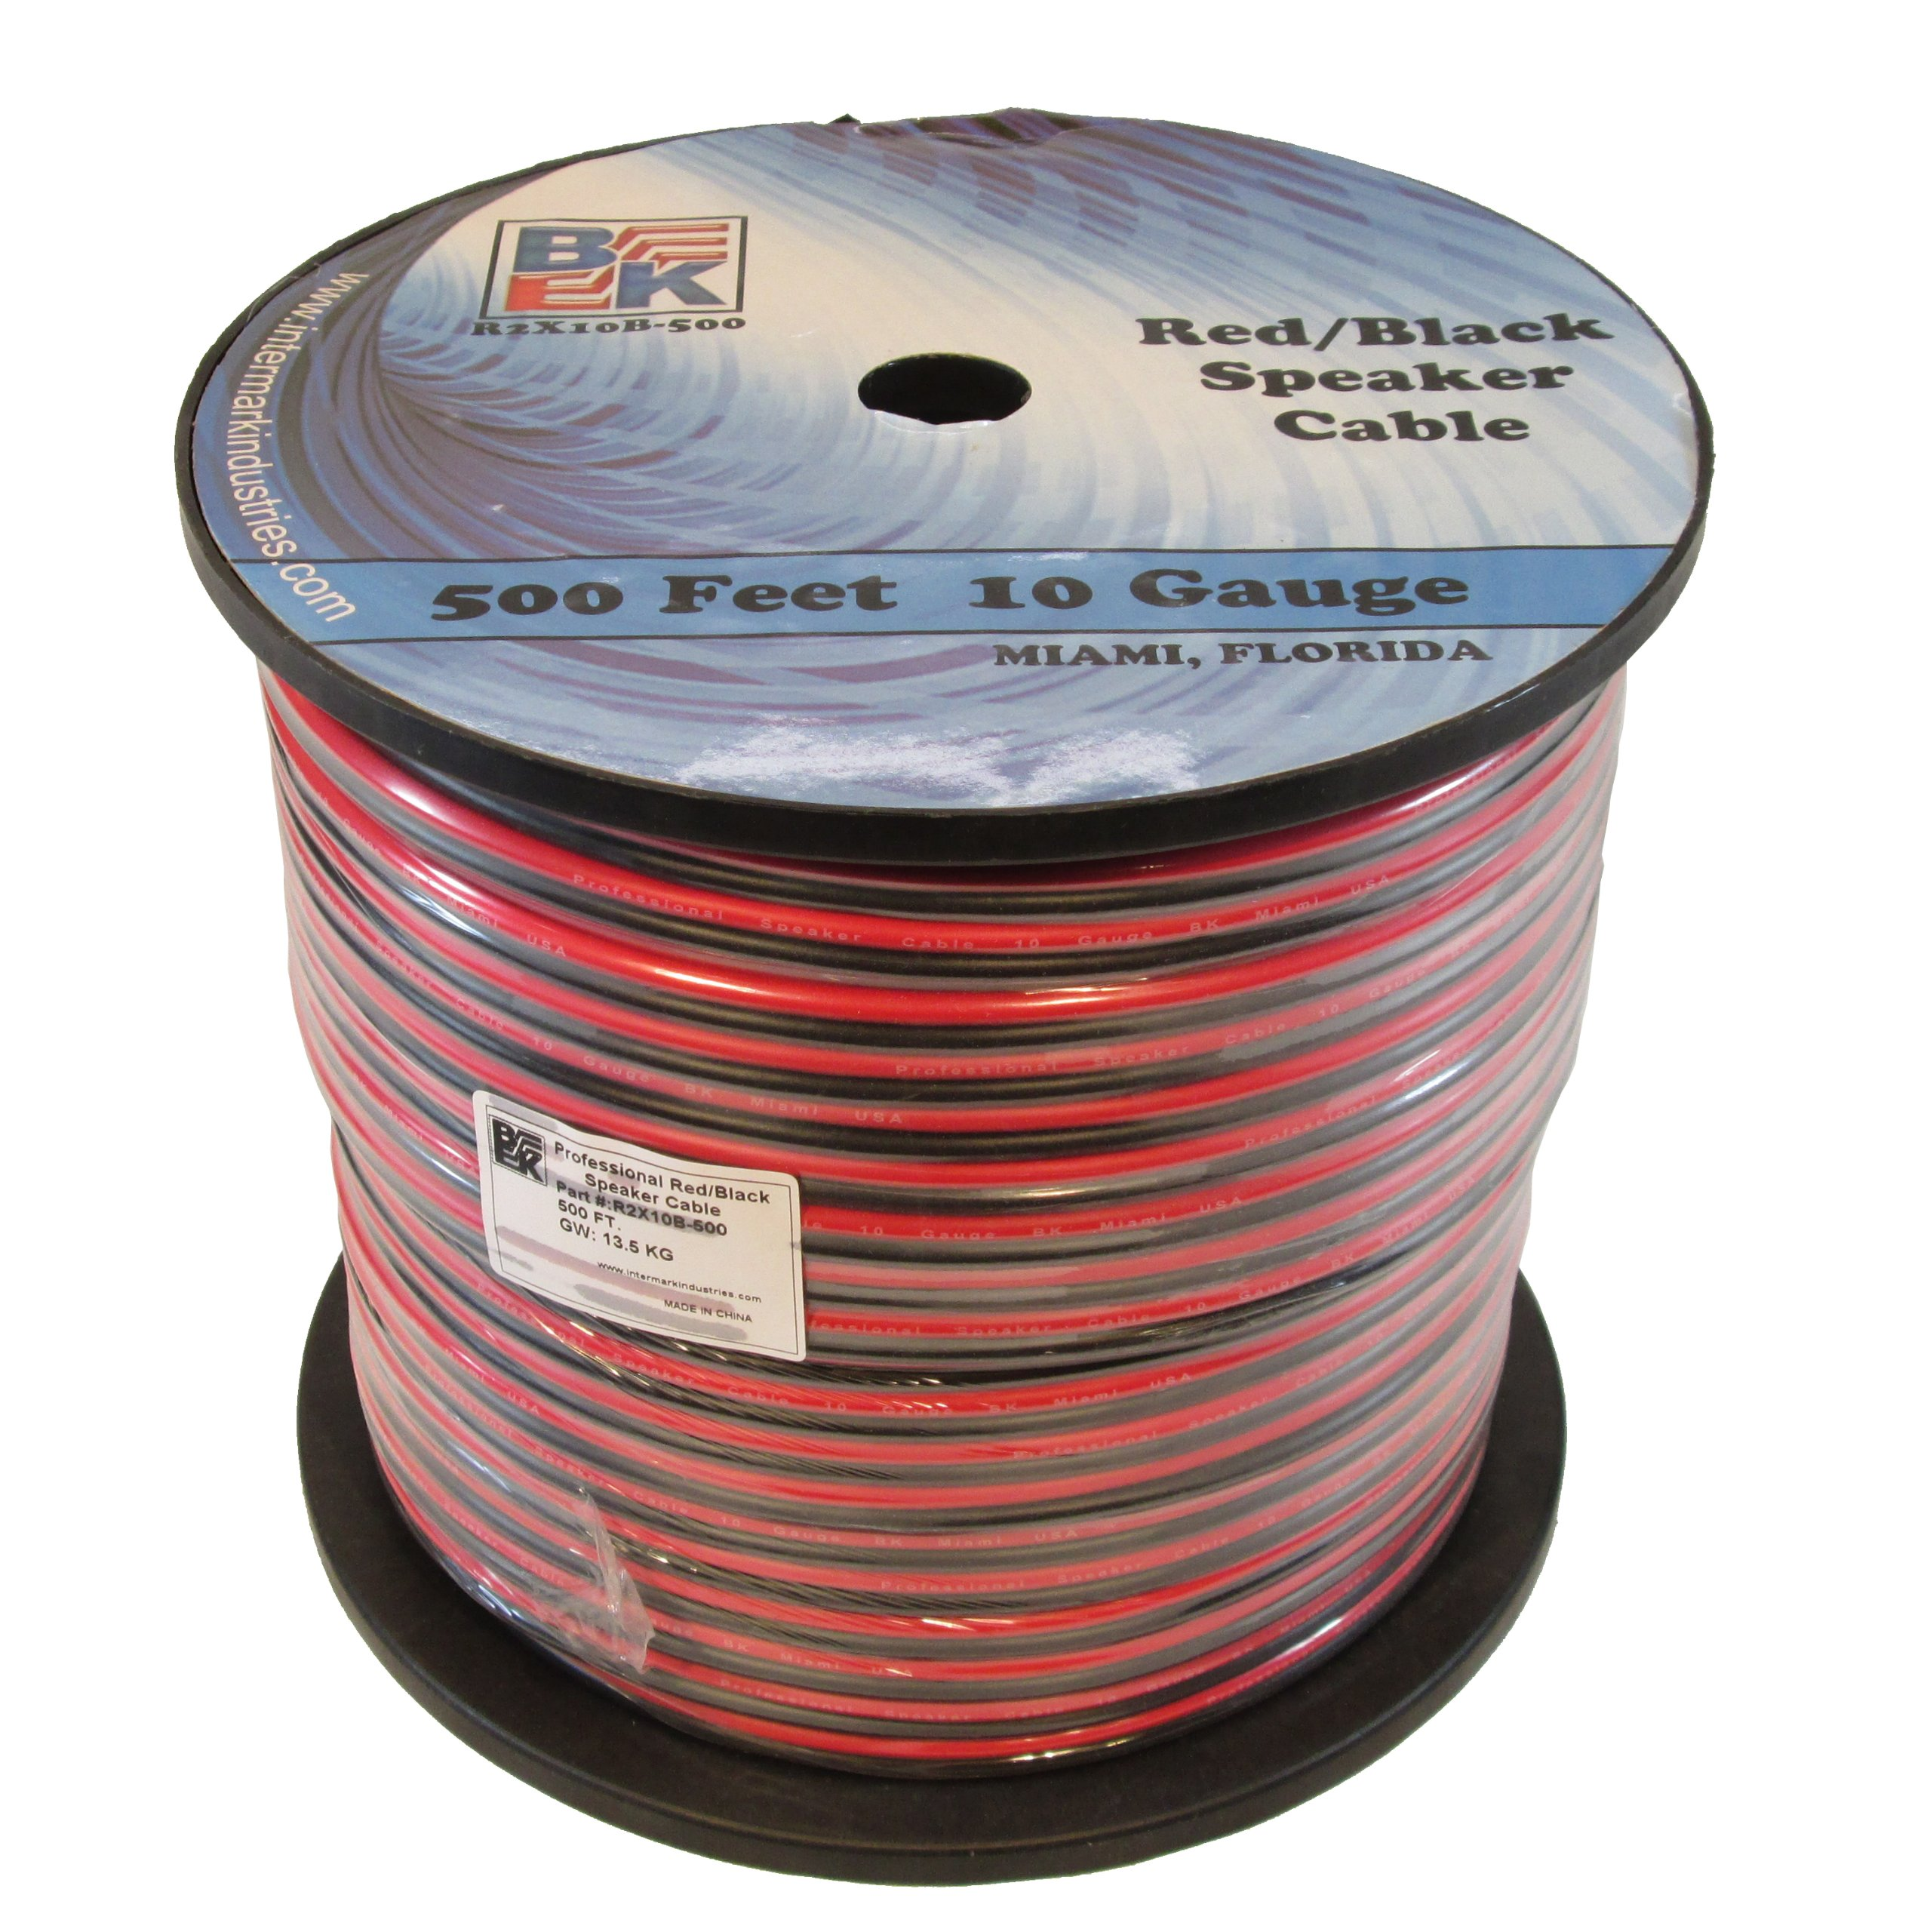 Blast King IR2X10B-500 10 Gauge 500-Feet Speaker Wire